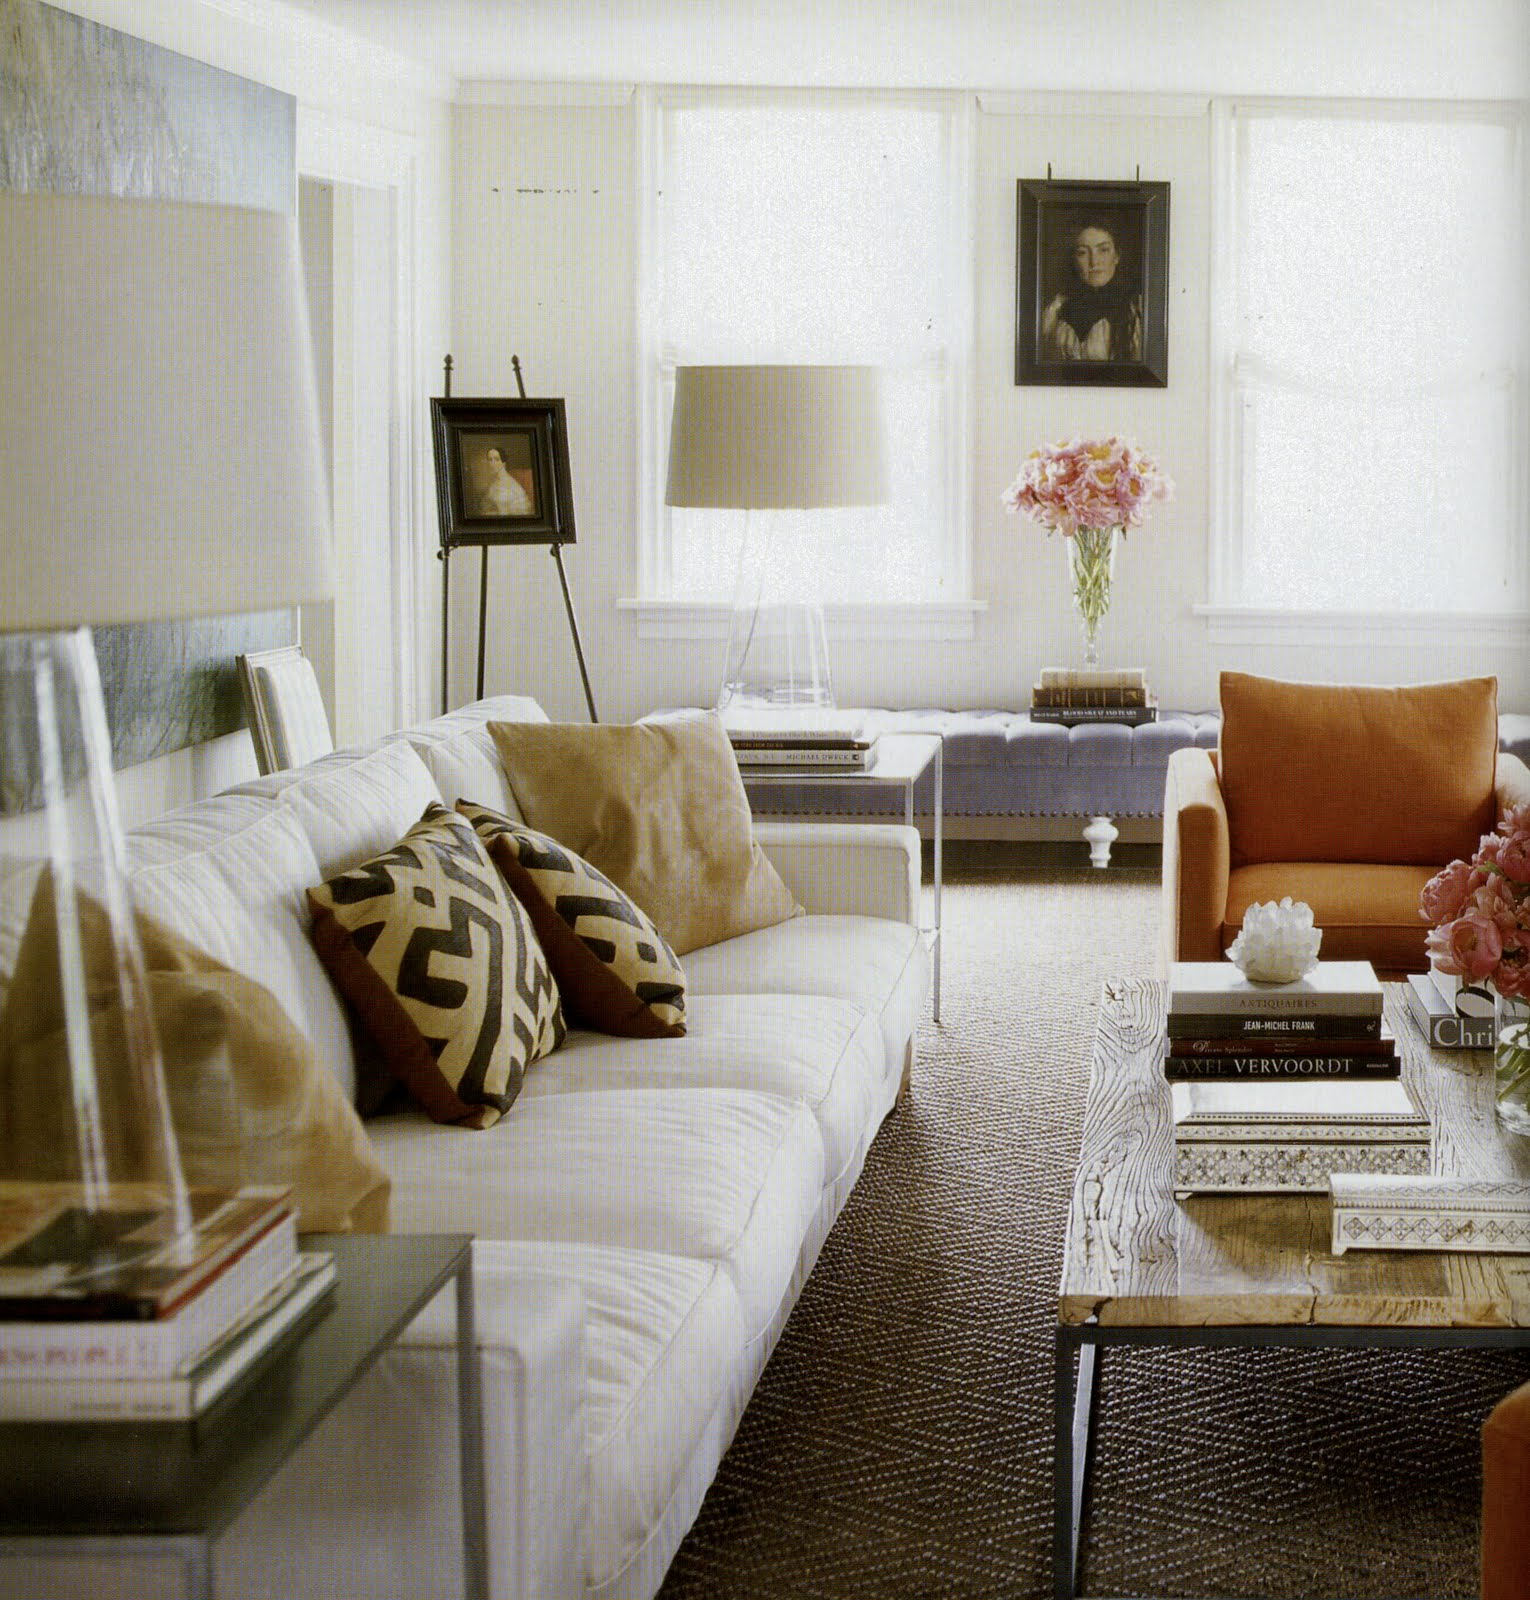 316 best living rooms images on Pinterest | Living spaces, Family ...